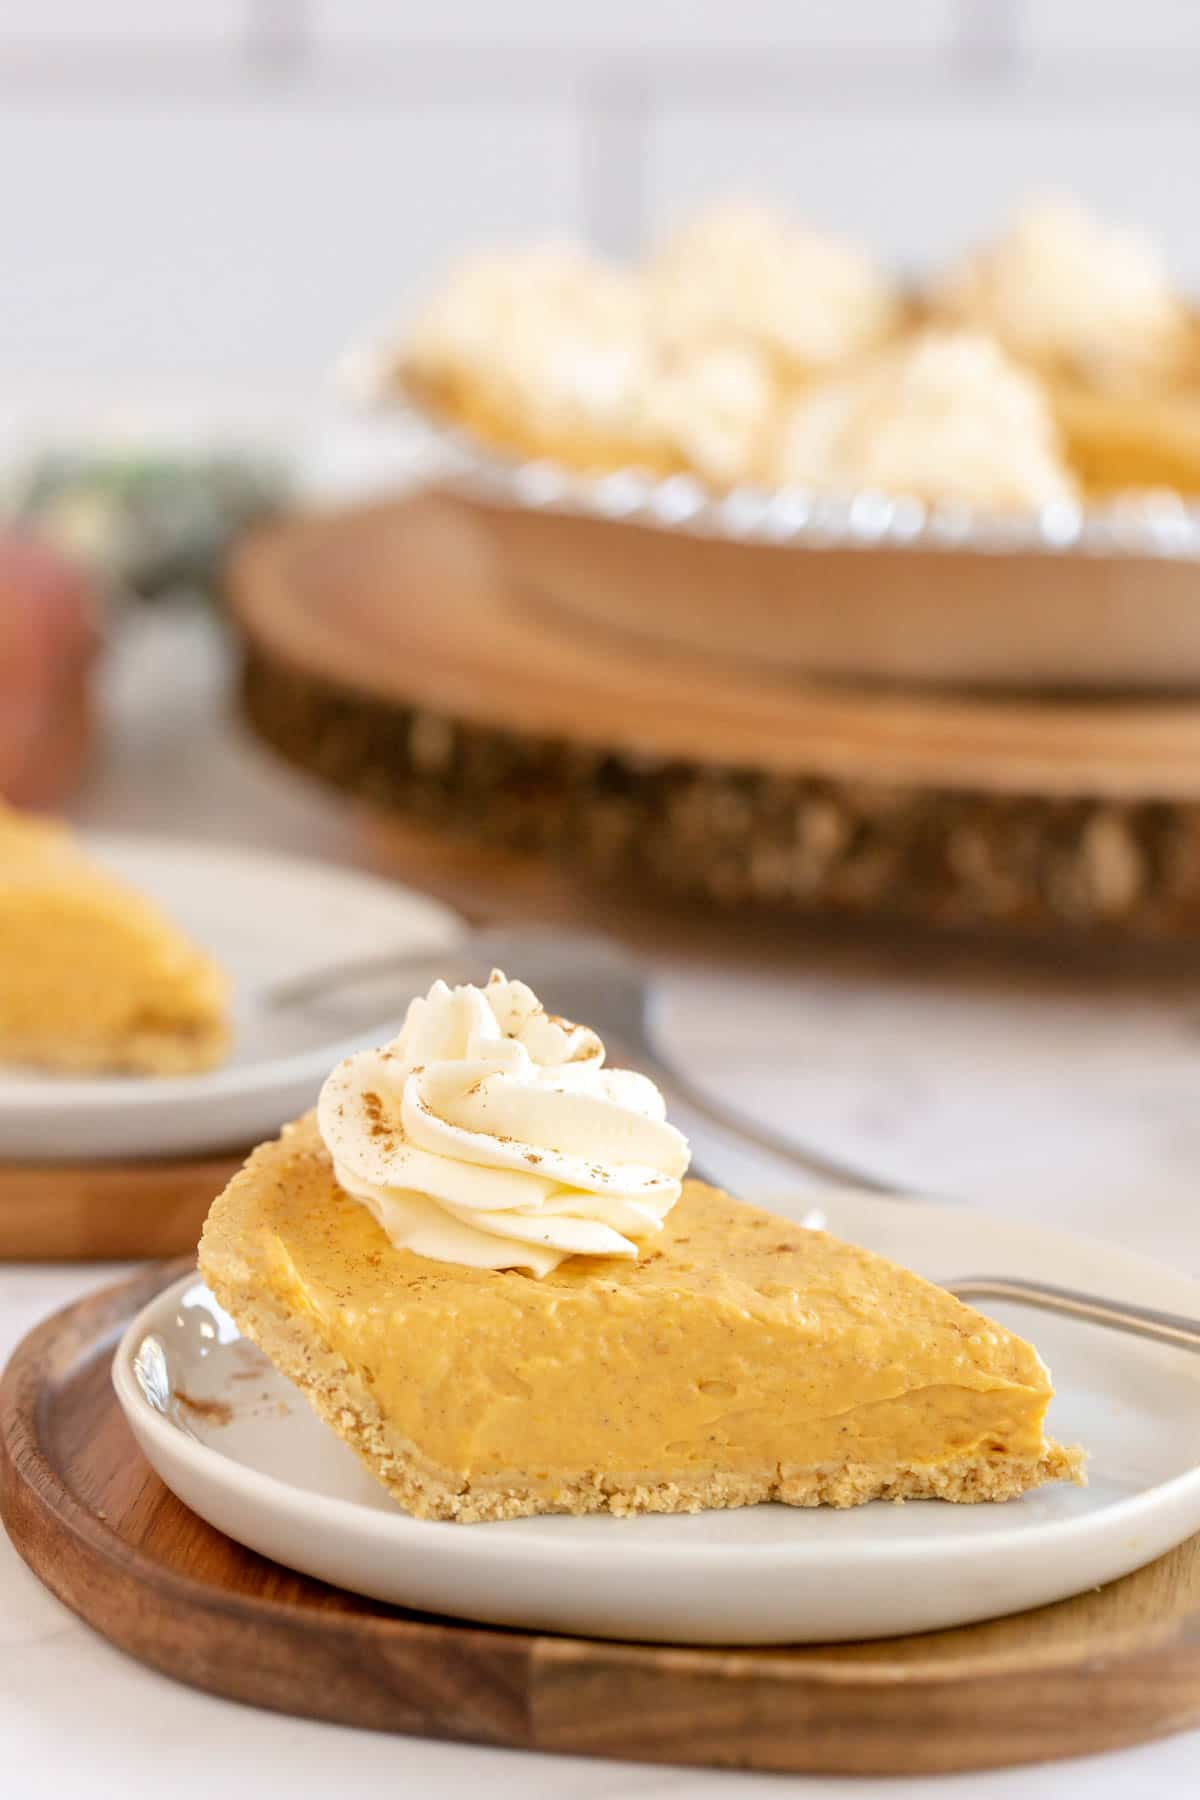 A piece of no bake pumpkin pie with the rest of the pie in the background